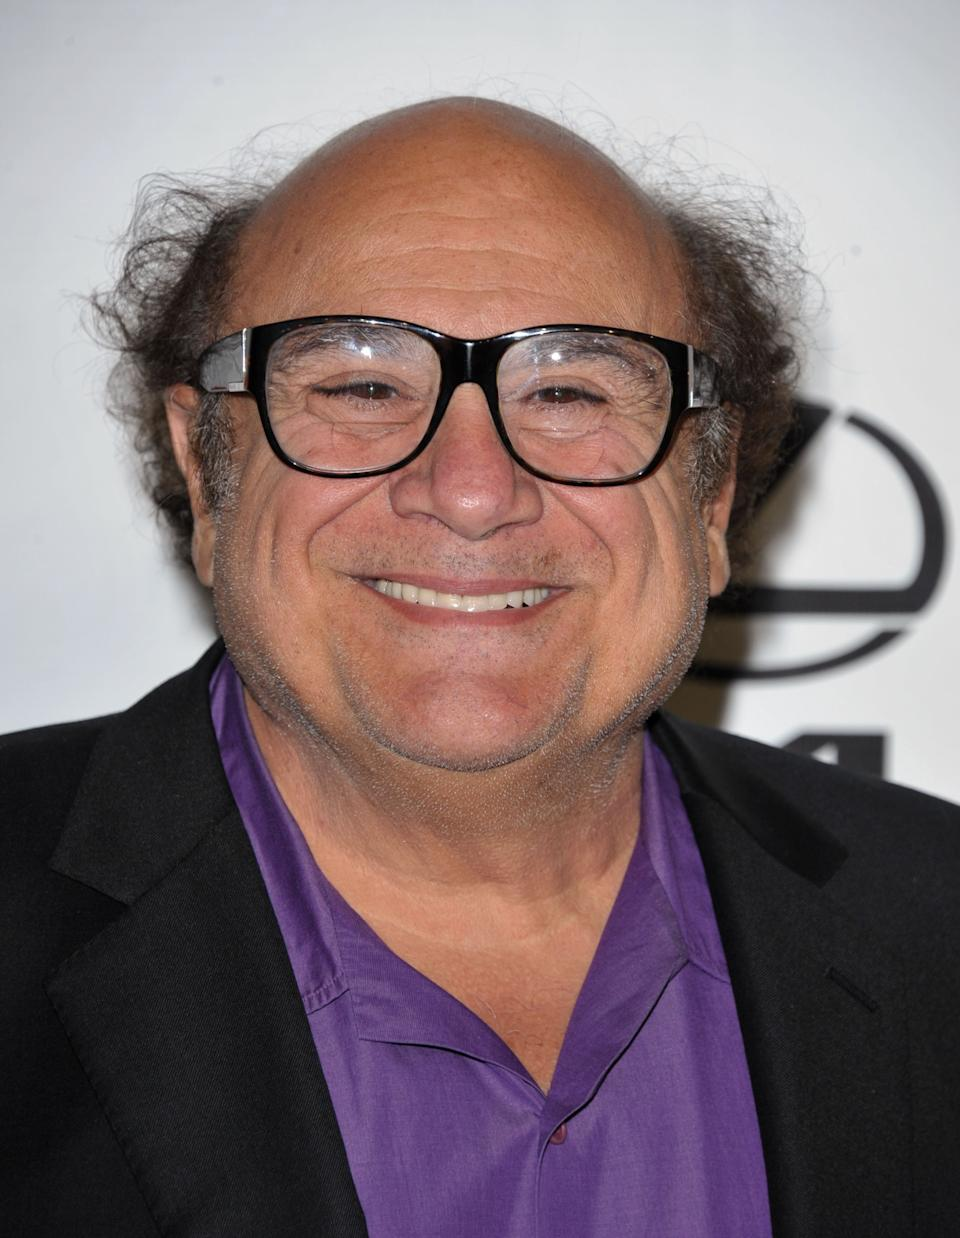 IMAGE DISTRIBUTED FOR  ENVIRONMENTAL MEDIA ASSOCIATION -  Danny DeVito arrives at the 22nd Annual Environmental Media Awards on Saturday Sept. 29, 2012, at Warner Bros. Studios in Burbank, Calif. (Photo by John Shearer/Invision for Environmental Media Association/AP Images)